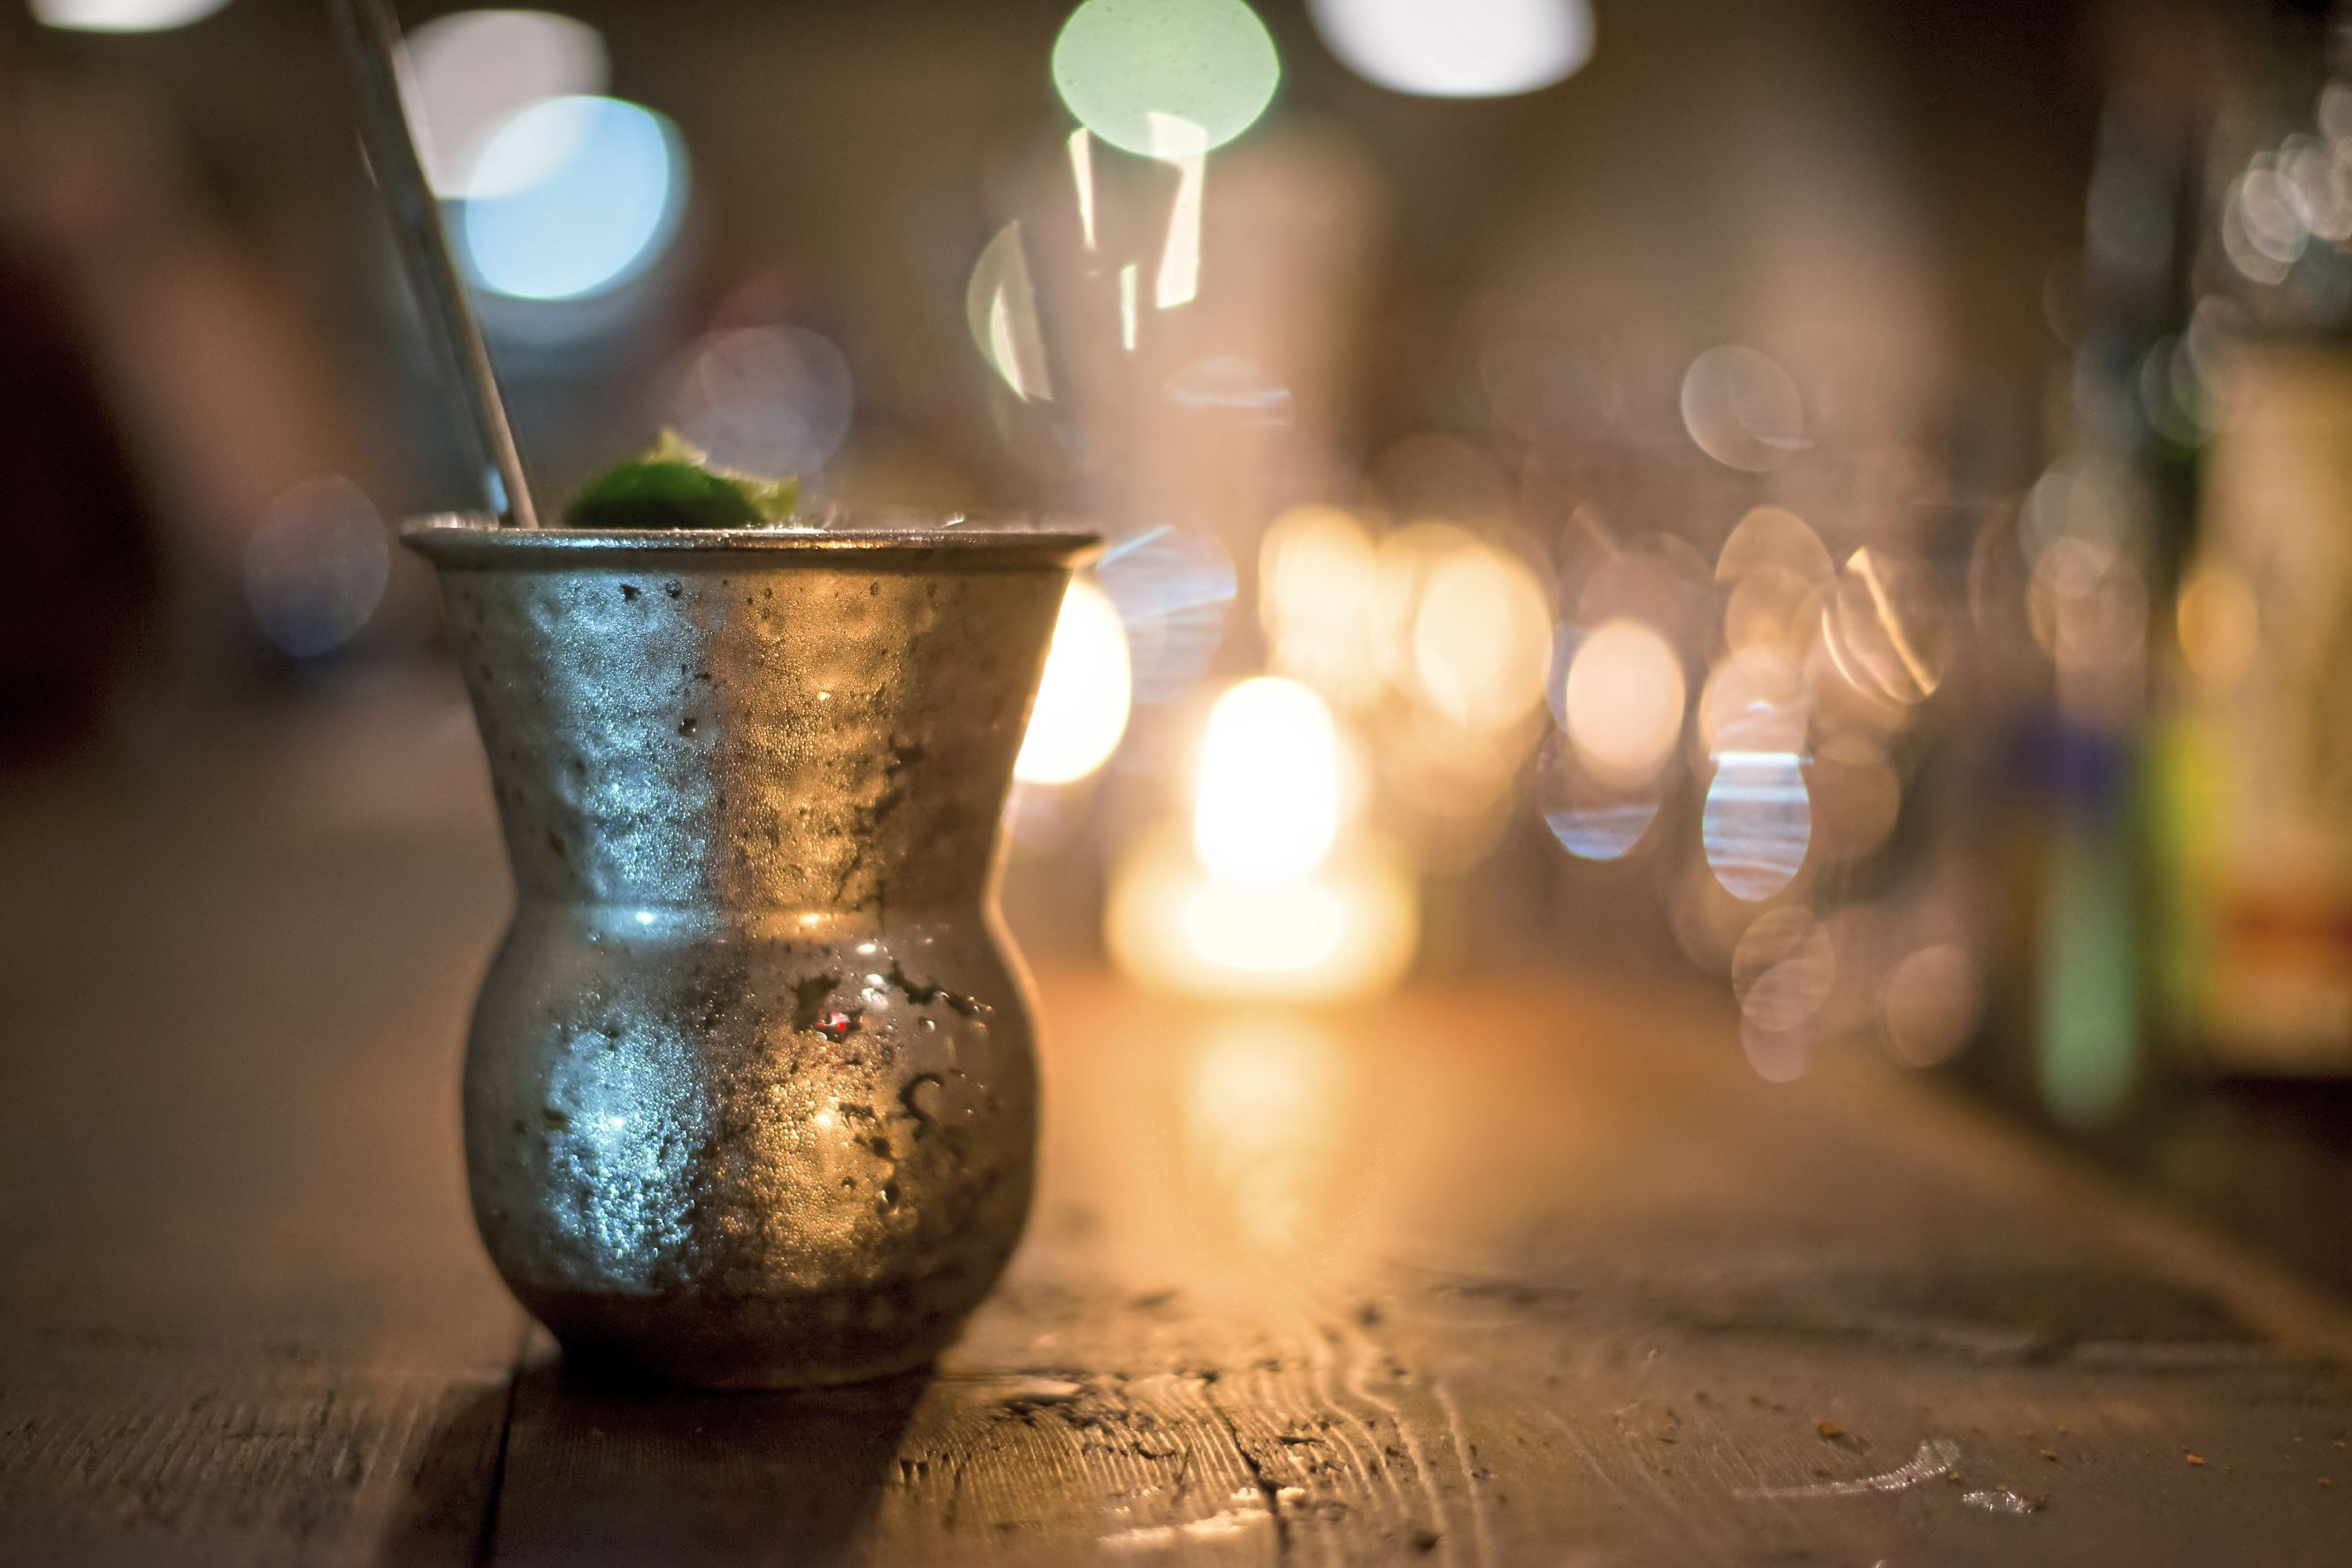 20171010smsOysterCo09-5 The Holywater, a take on the tiki drink, is served in a chalice-like metal cup with a metal straw at Merchant Oyster Co.